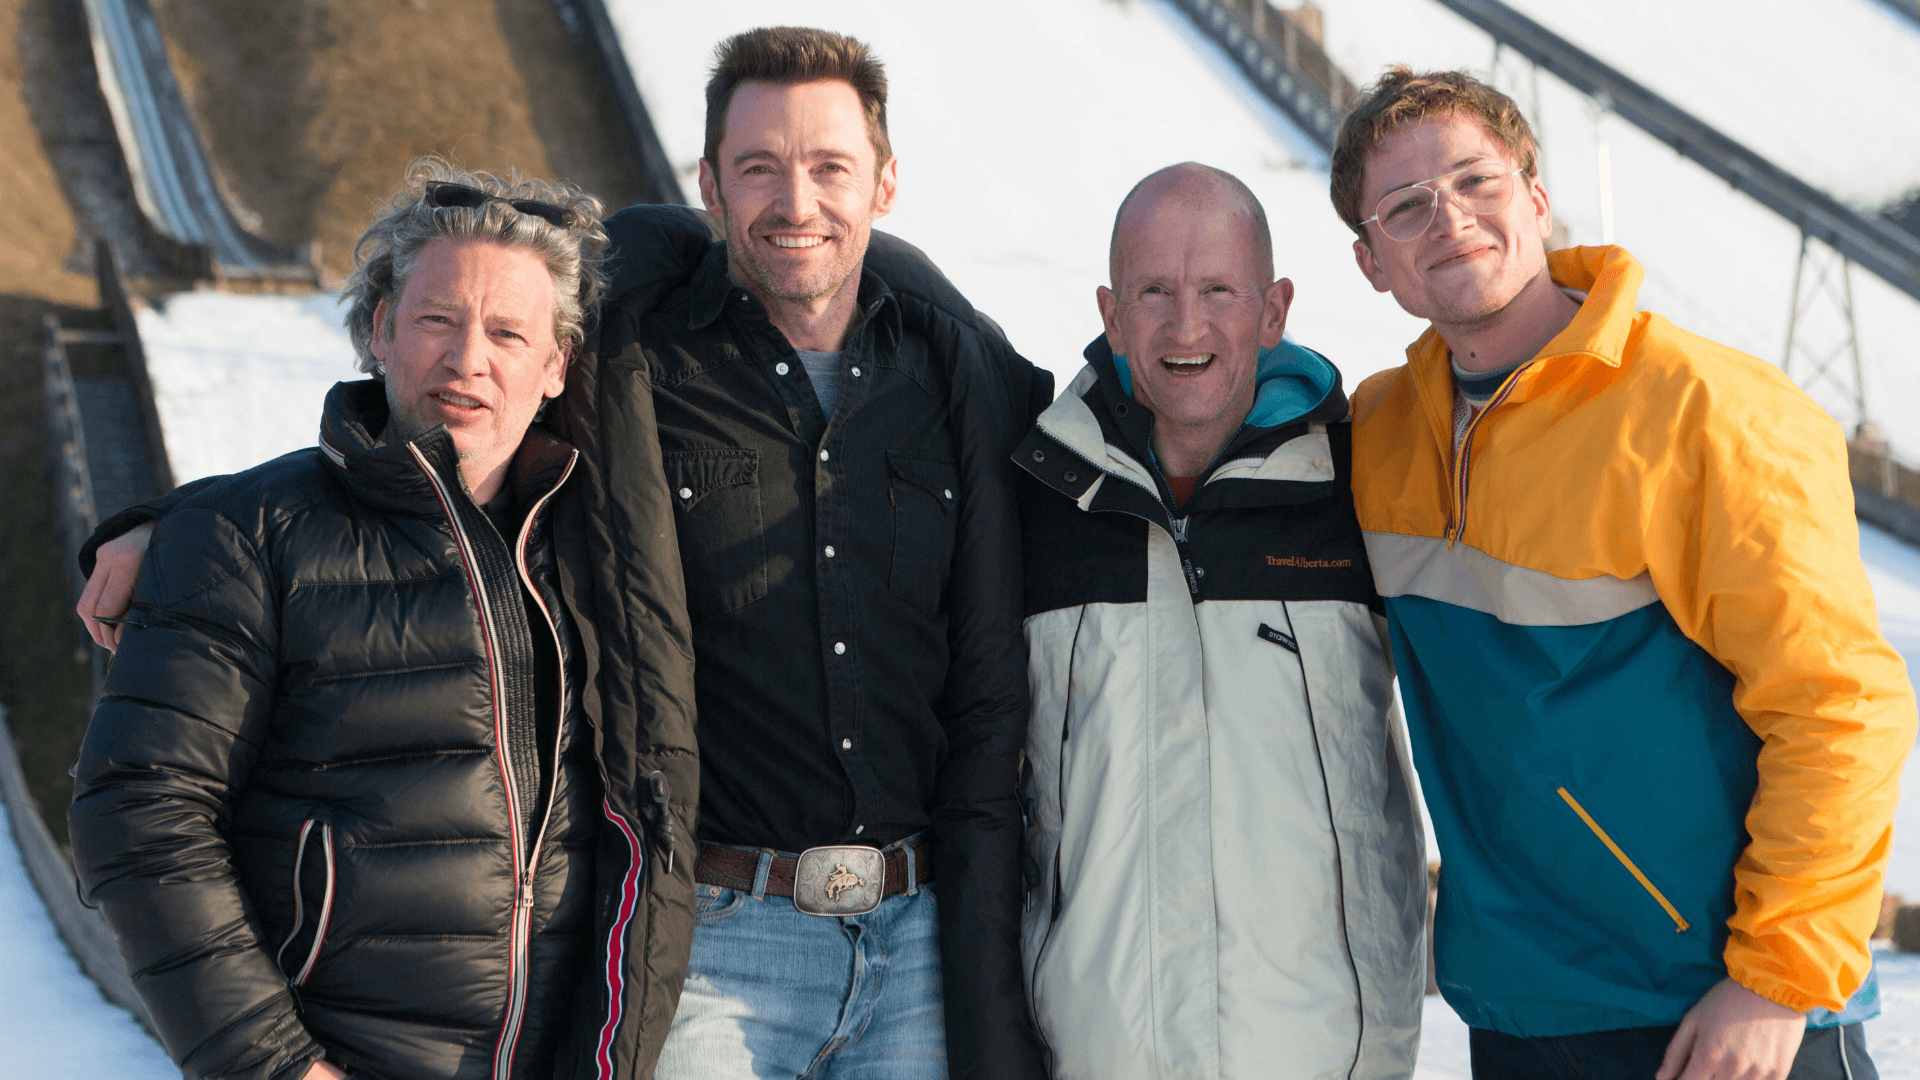 Eddie The Eagle cast and crew